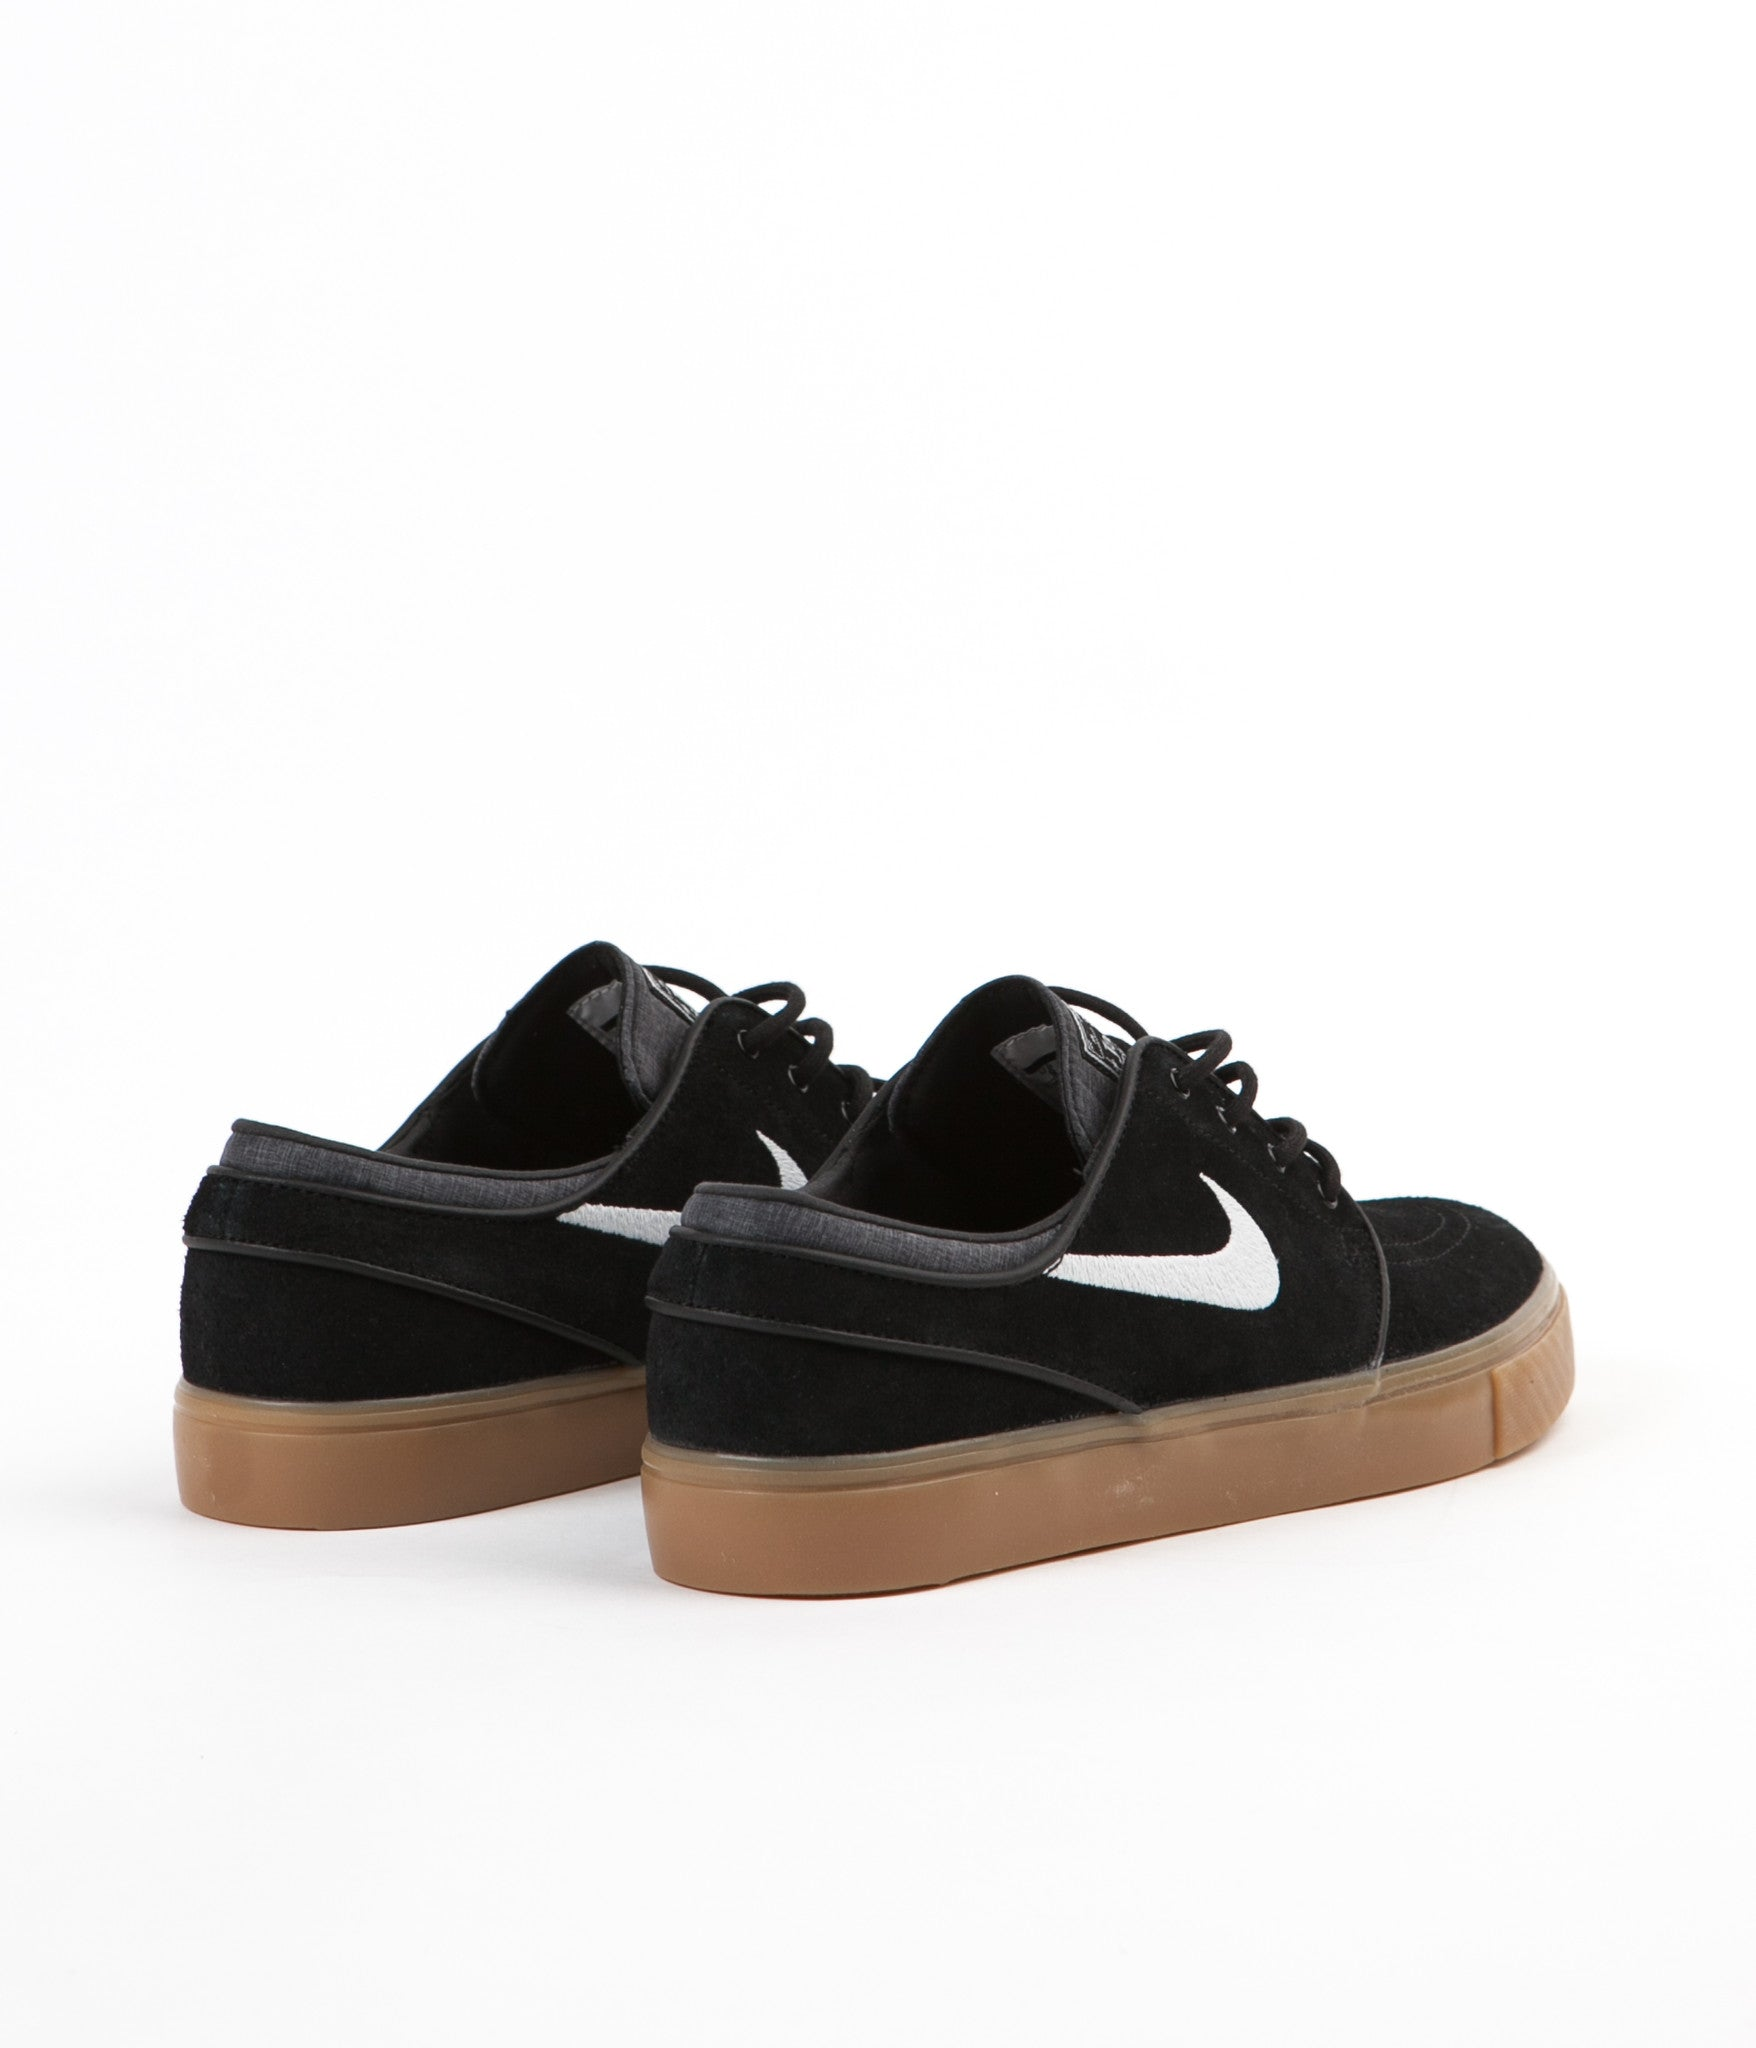 Nike SB Stefan Janoski Shoes - Black / White - Gum - Light Brown